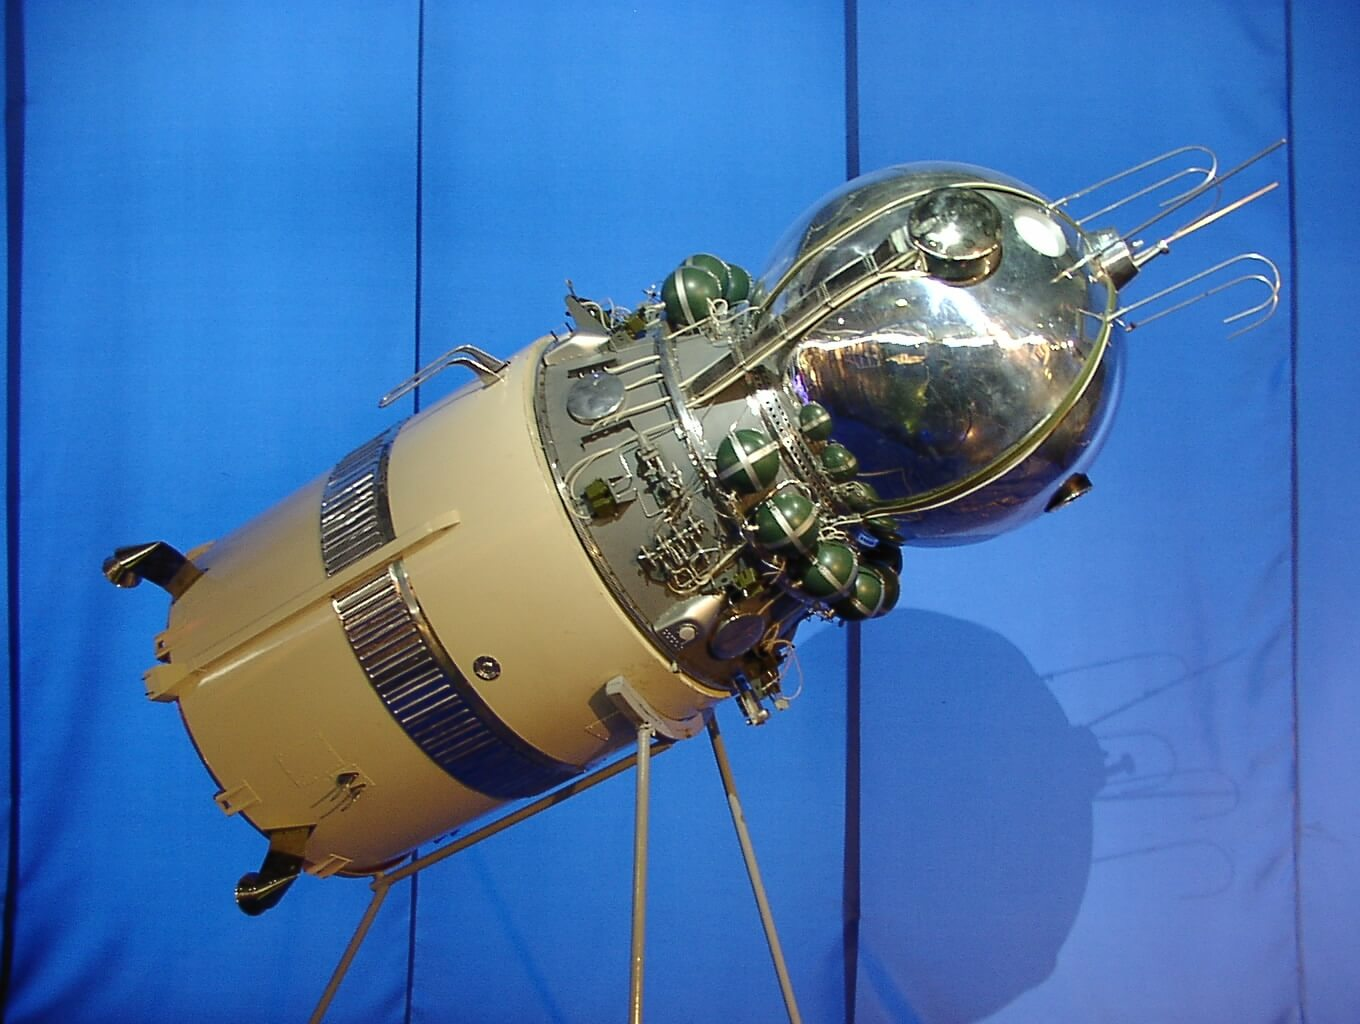 Vostok_spacecraft